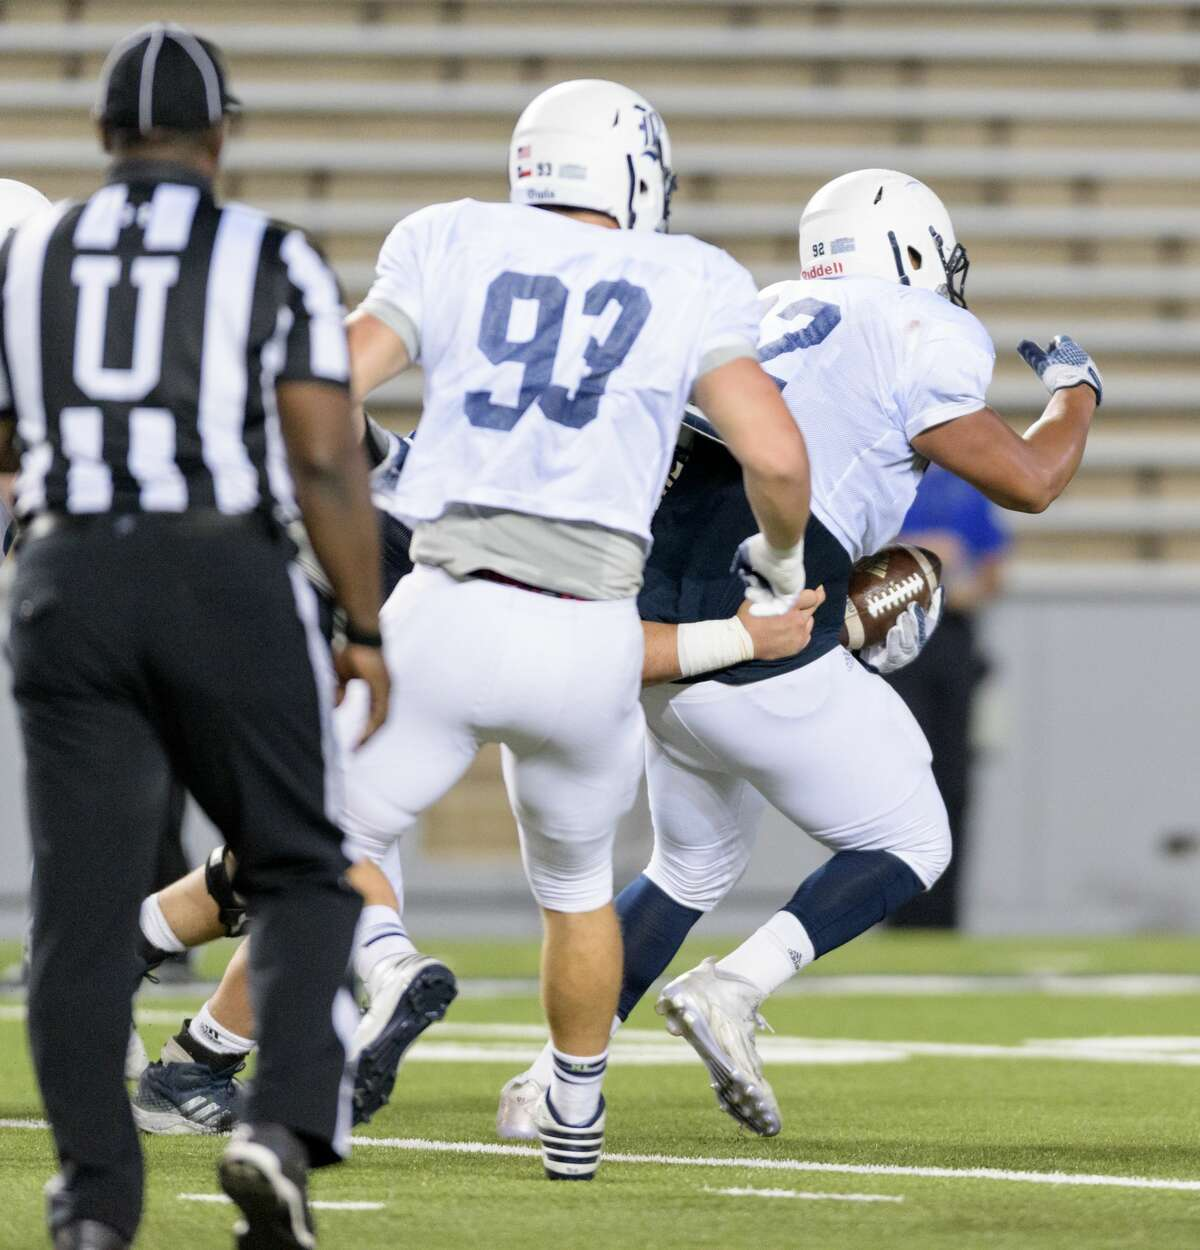 Elijah Garcia (92) of the Rice Owls runs for a short gain after picking up a fumble in the second half of the Rice Owls Spring Football game on Friday, April 7, 2017 at Rice Stadium in Houston Texas.